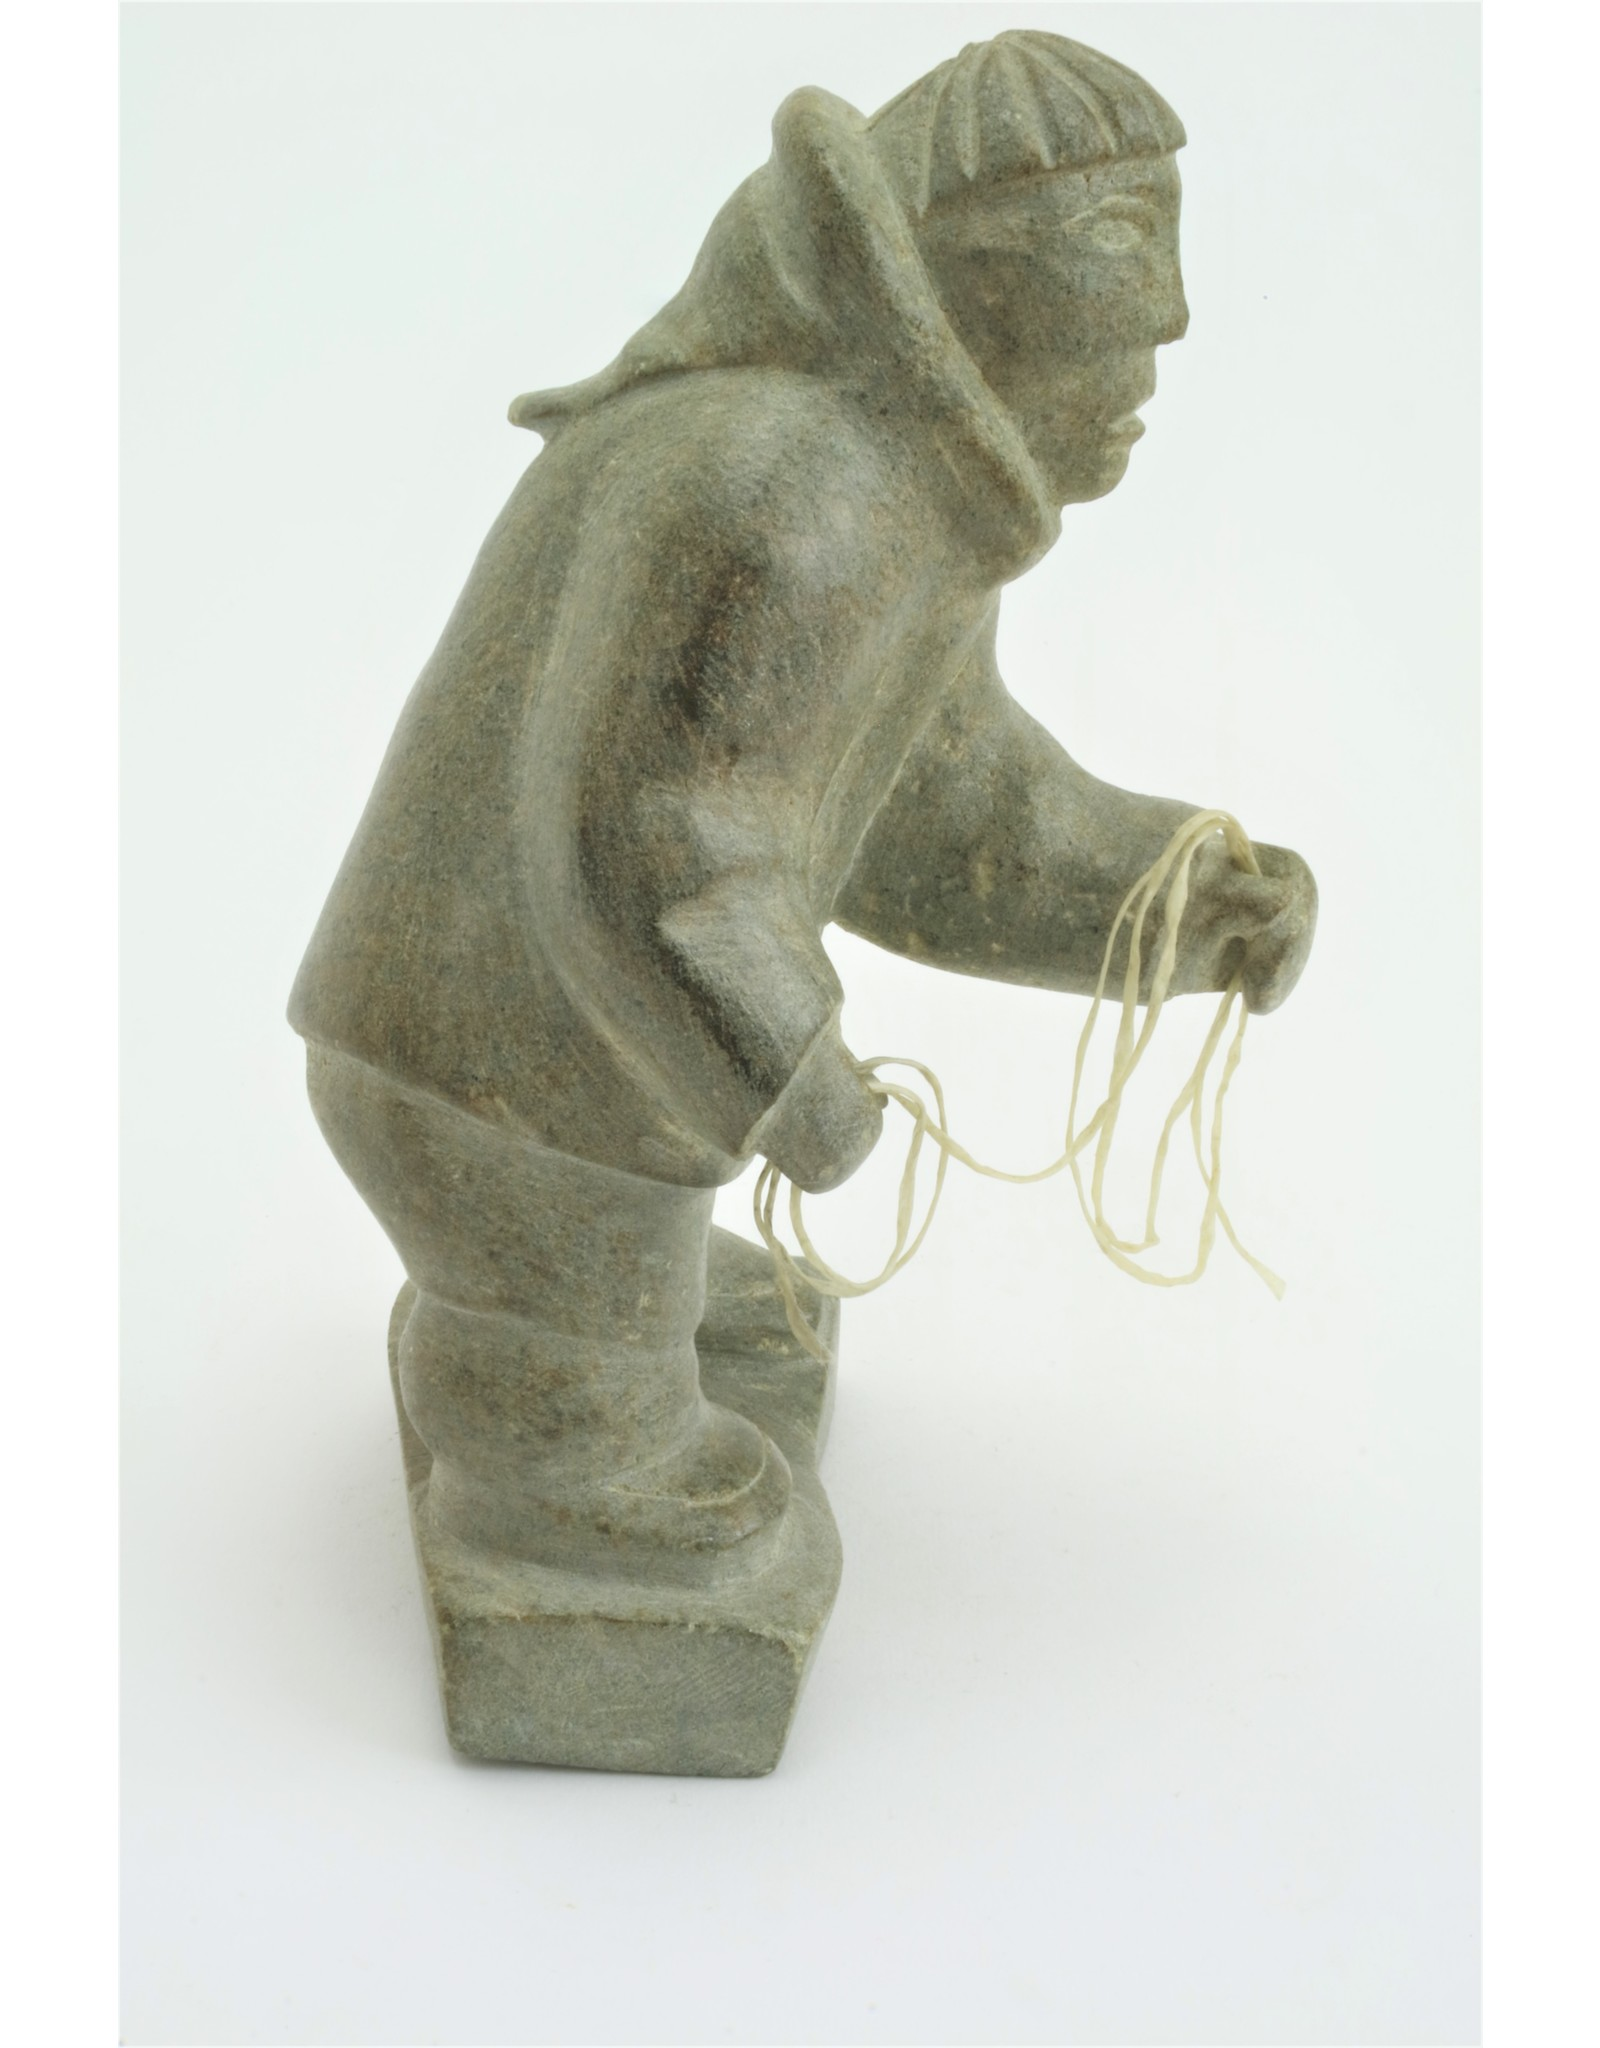 Man with rope